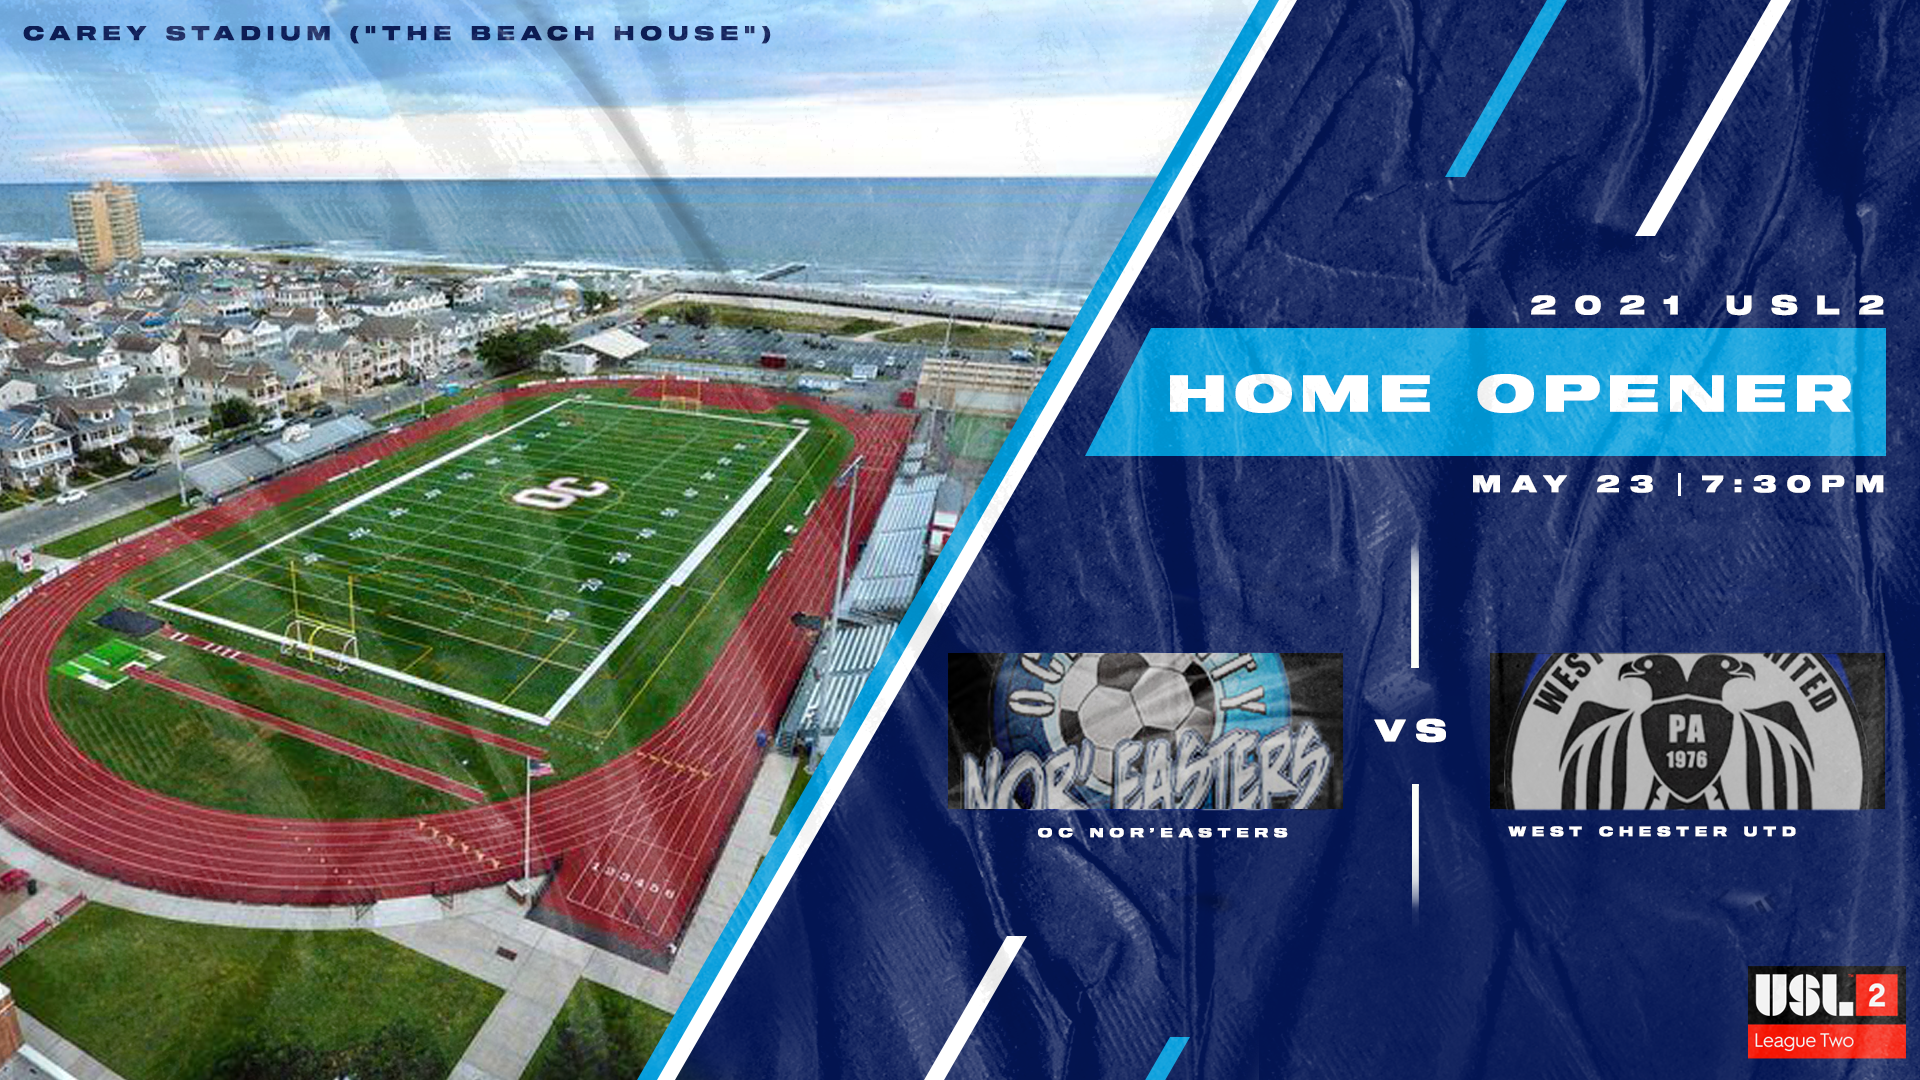 Nor'easters welcome West Chester United to Ocean City for club's 24th home opener